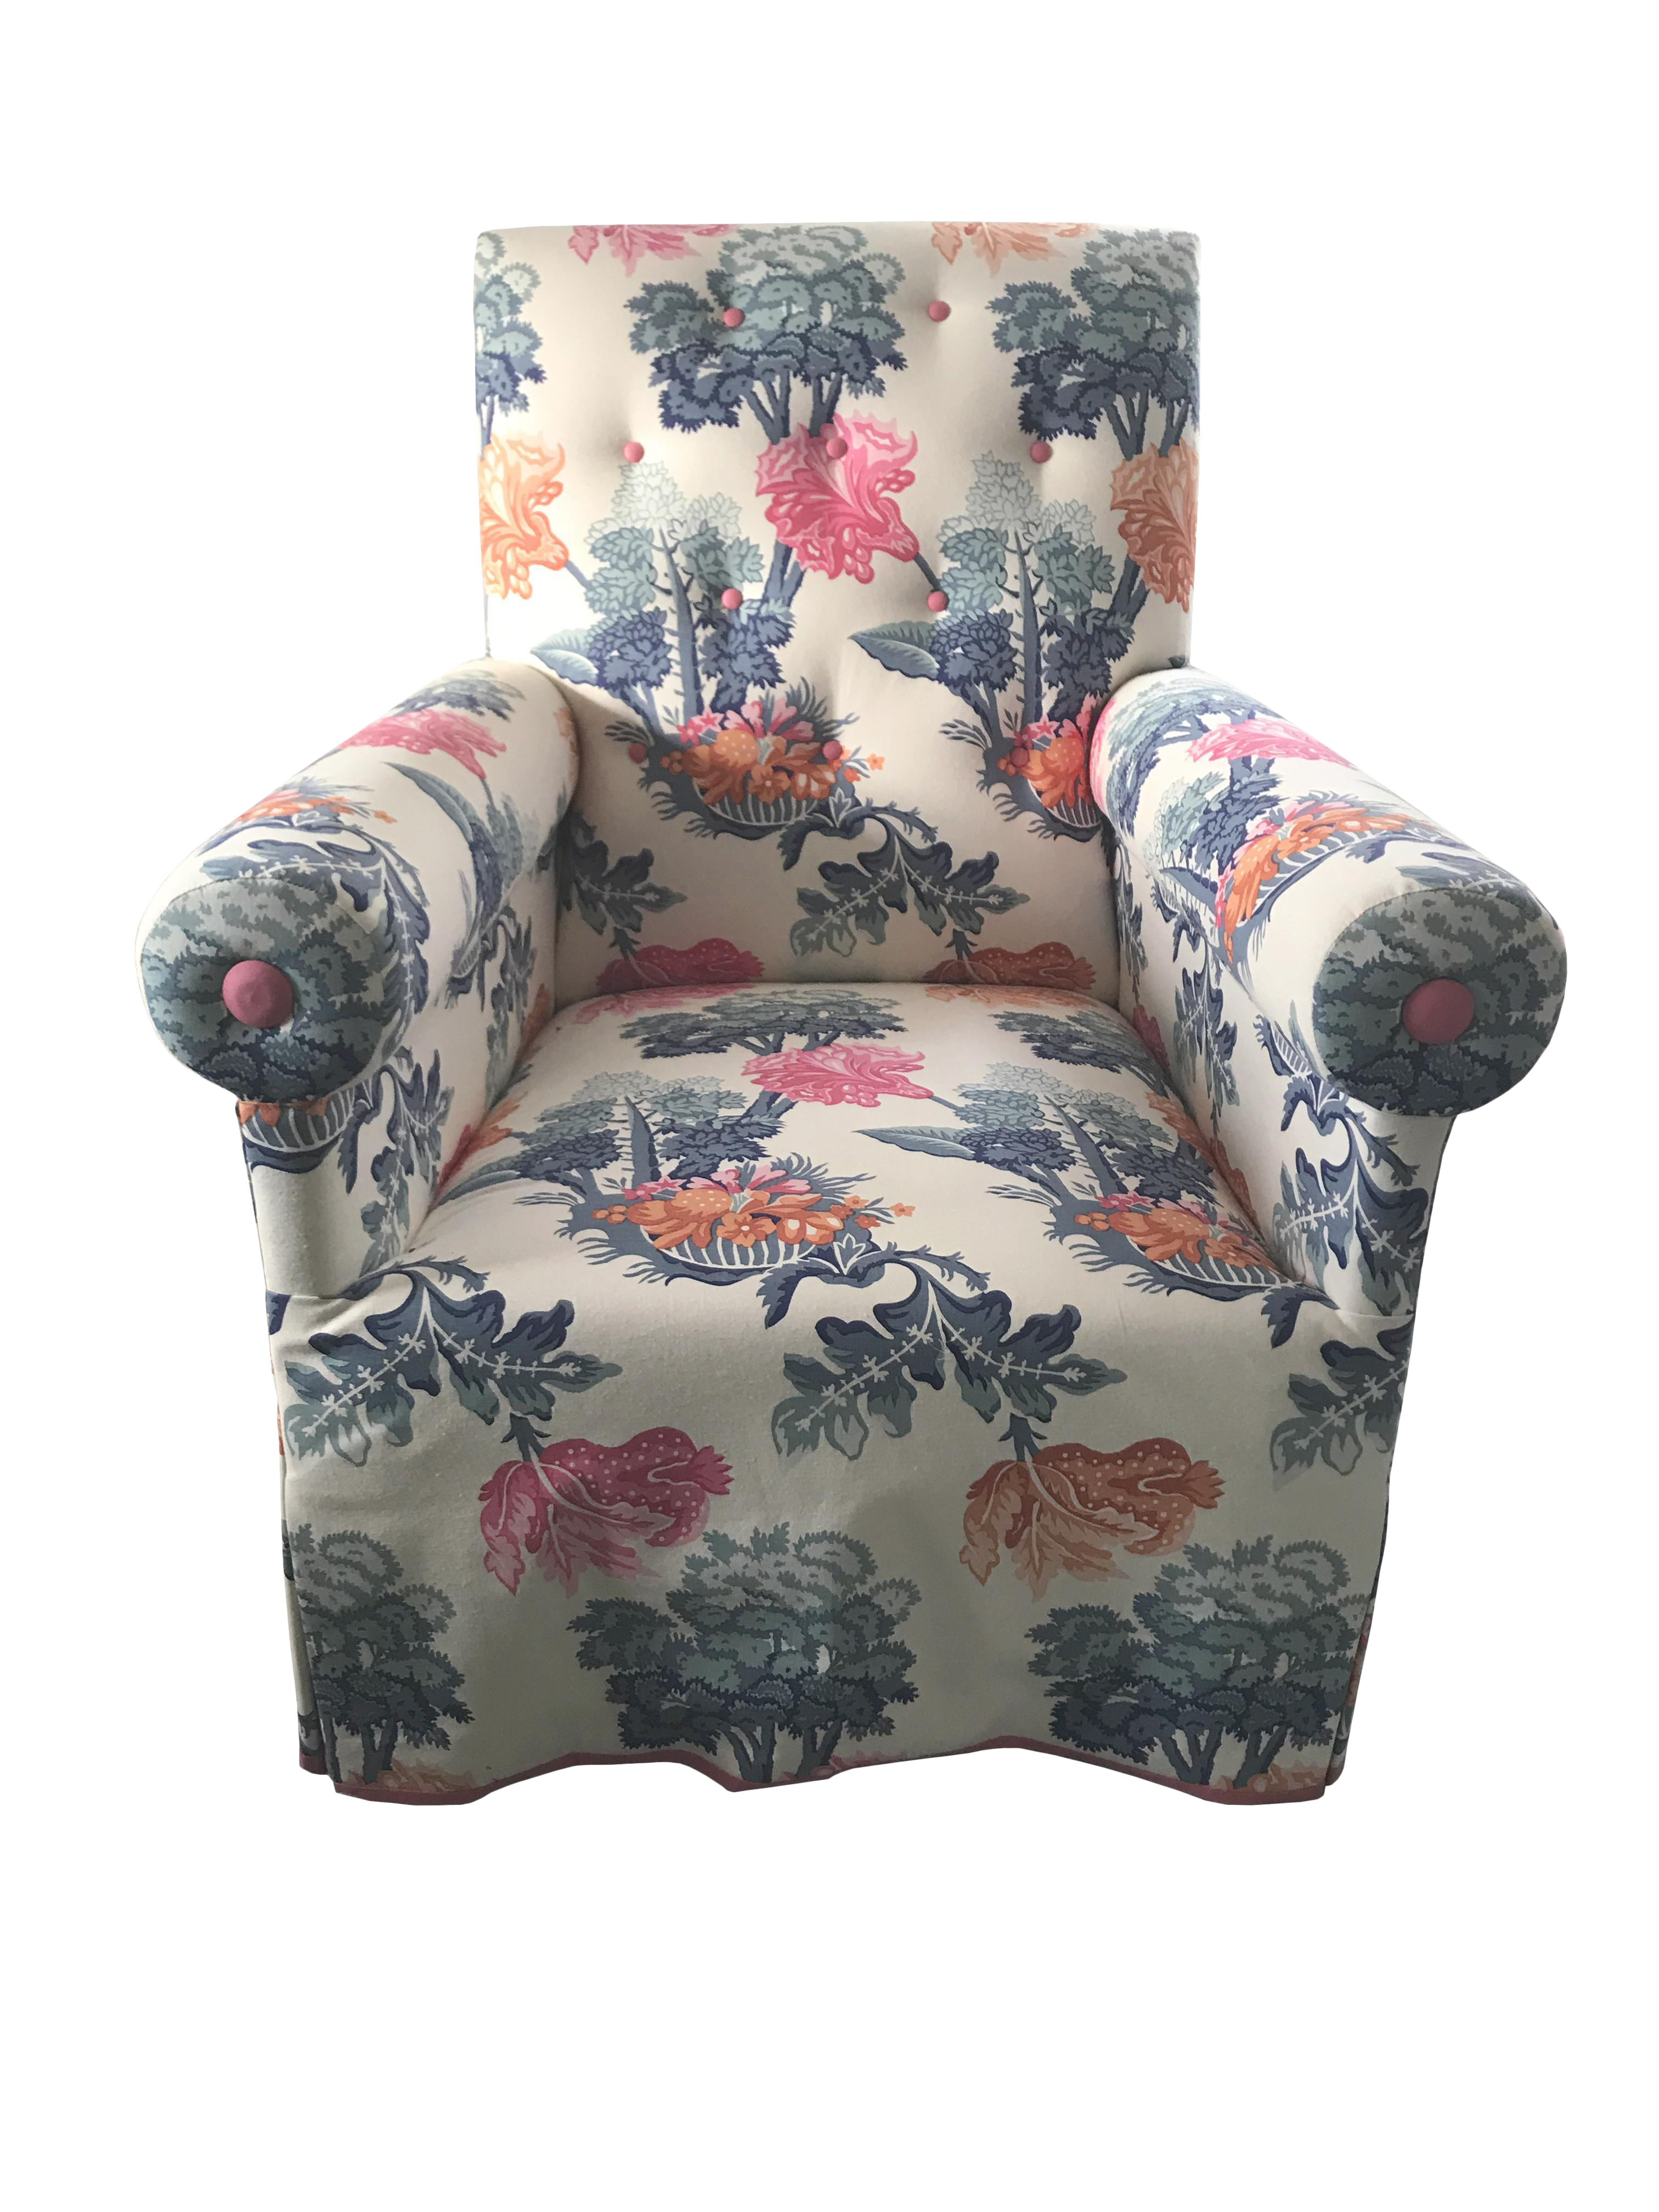 Jon Stefanidis Floral Fabric Skirted Armchair  sc 1 st  Chairish & Vintage u0026 Used Floral Accent Chairs for Sale | Chairish